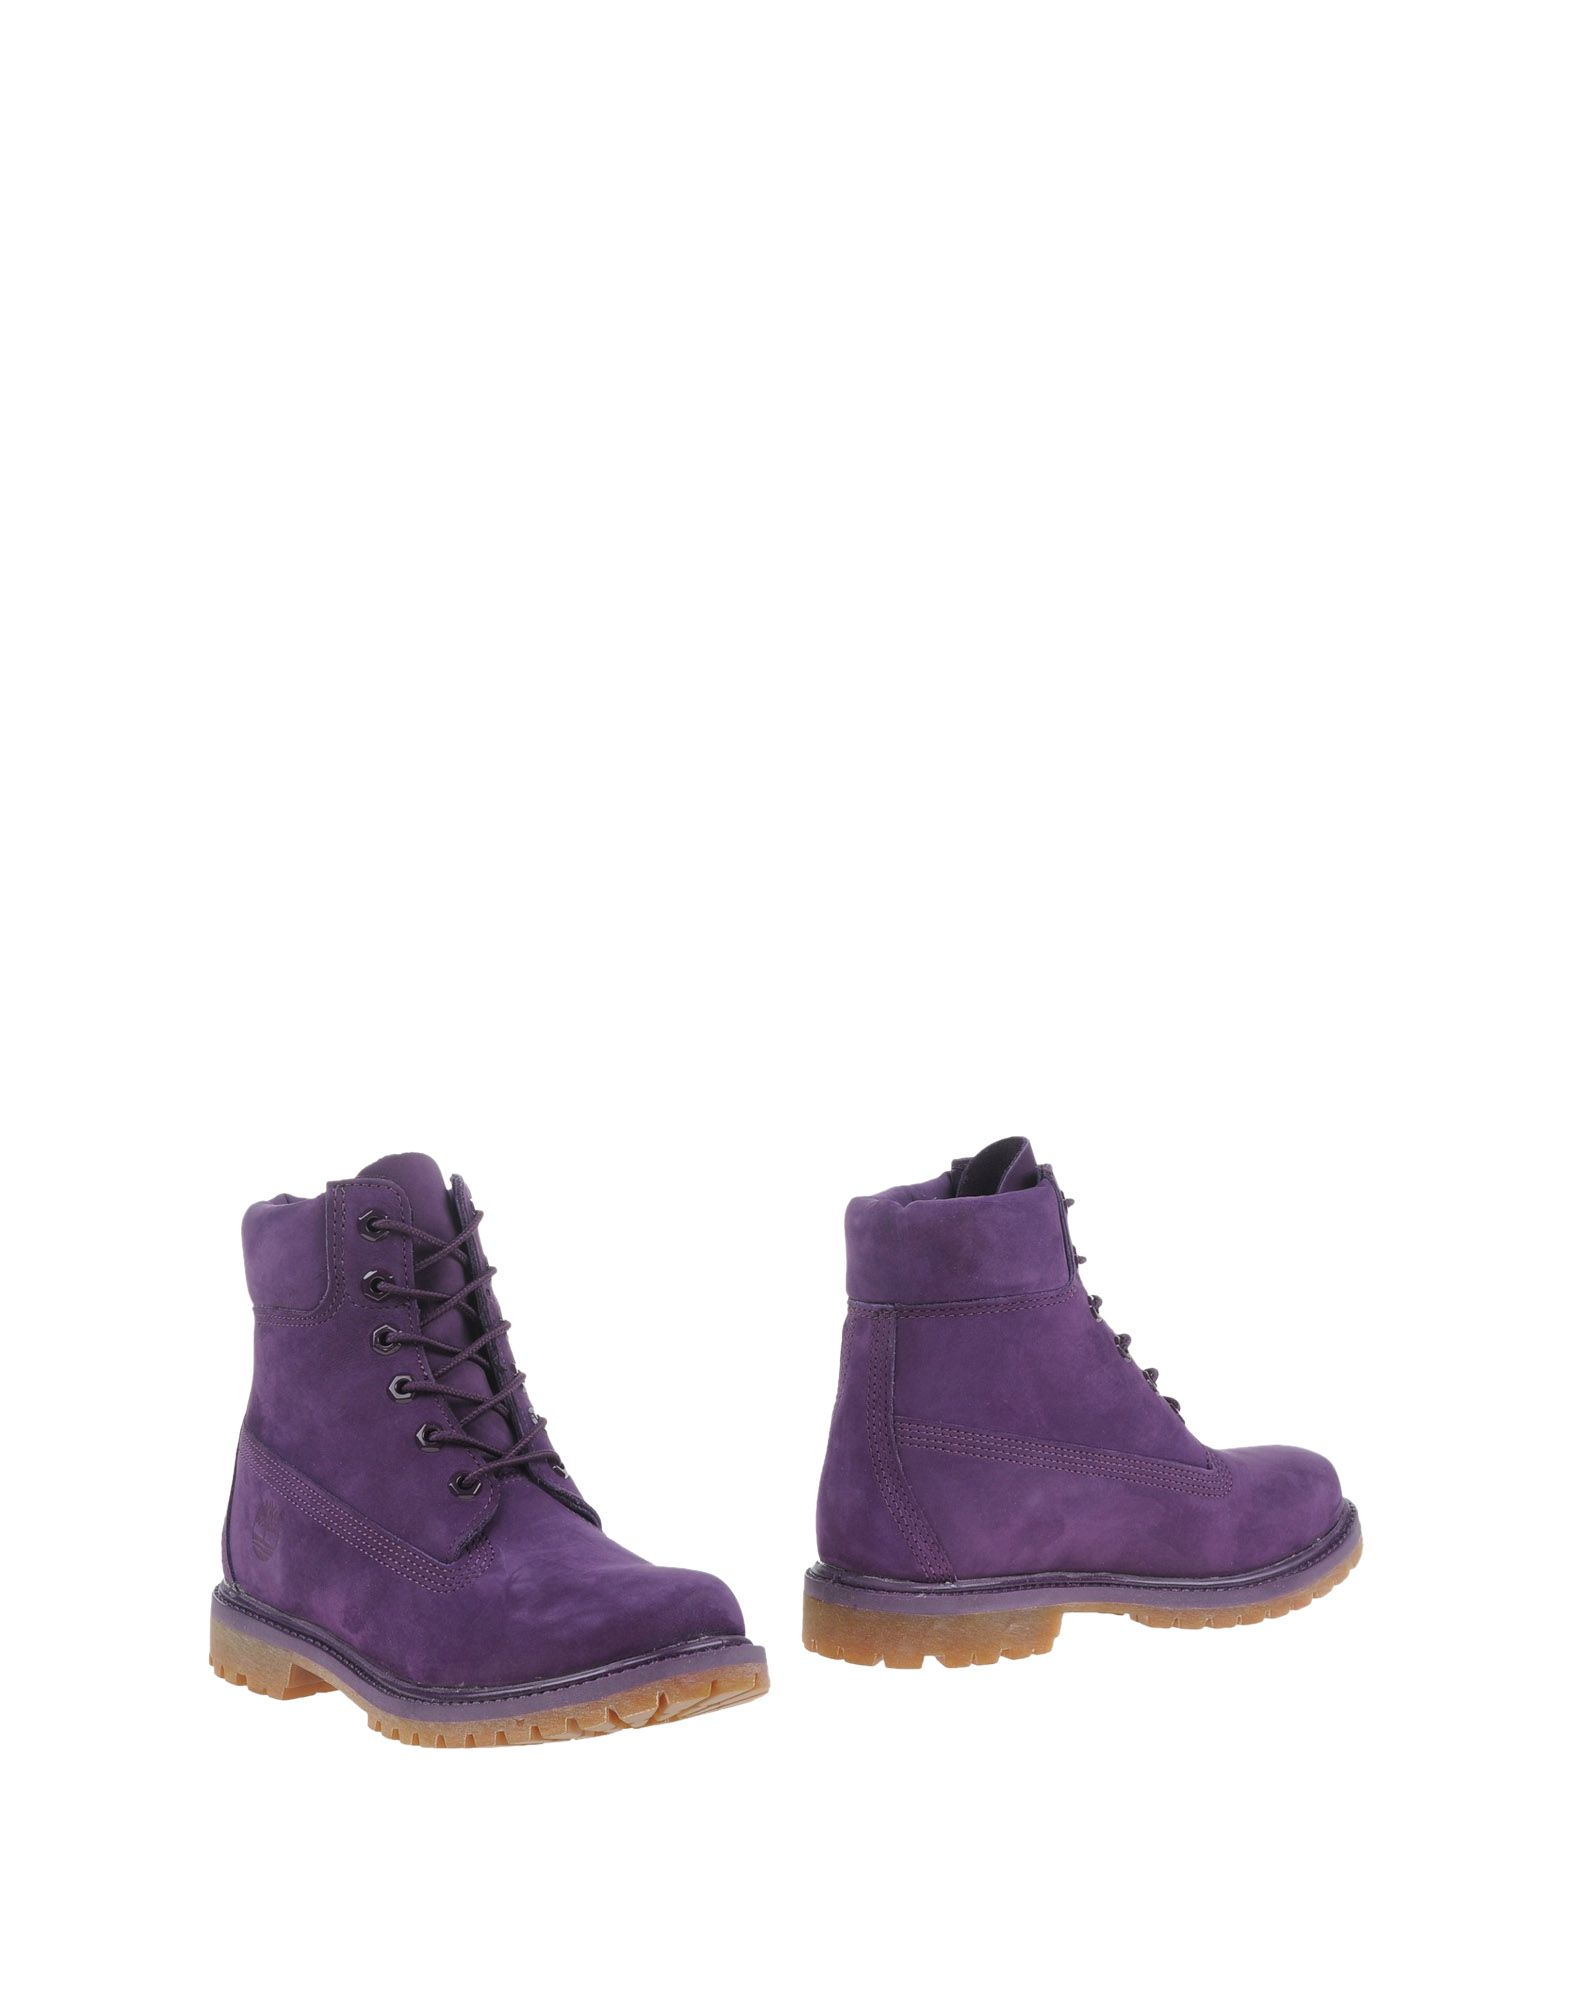 Lastest  Timberland 6 Inch Premium Boot  Womens Boots  Magenta Purple UK4981